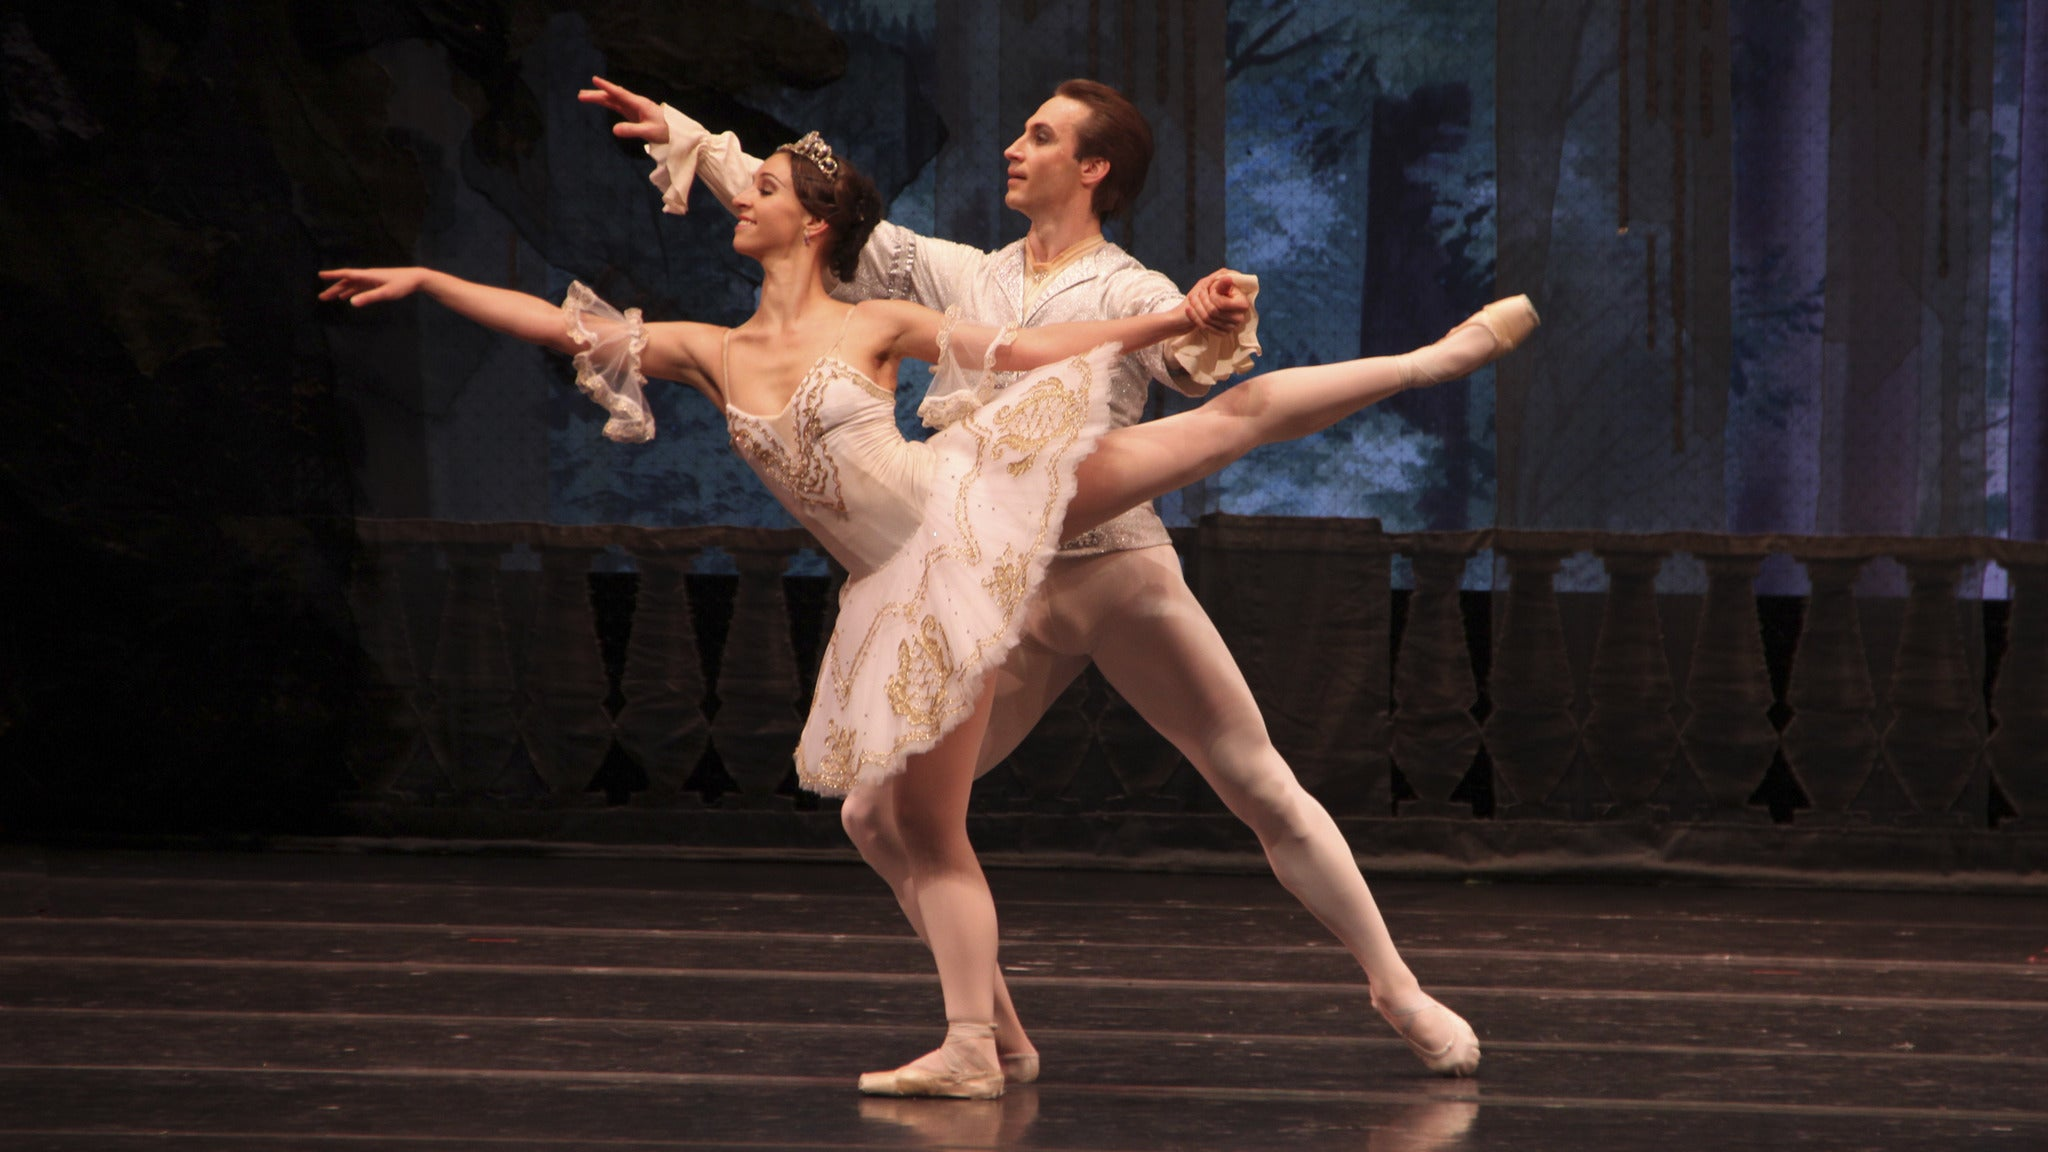 Stars of the Russian National Ballet - The Sleeping Beauty